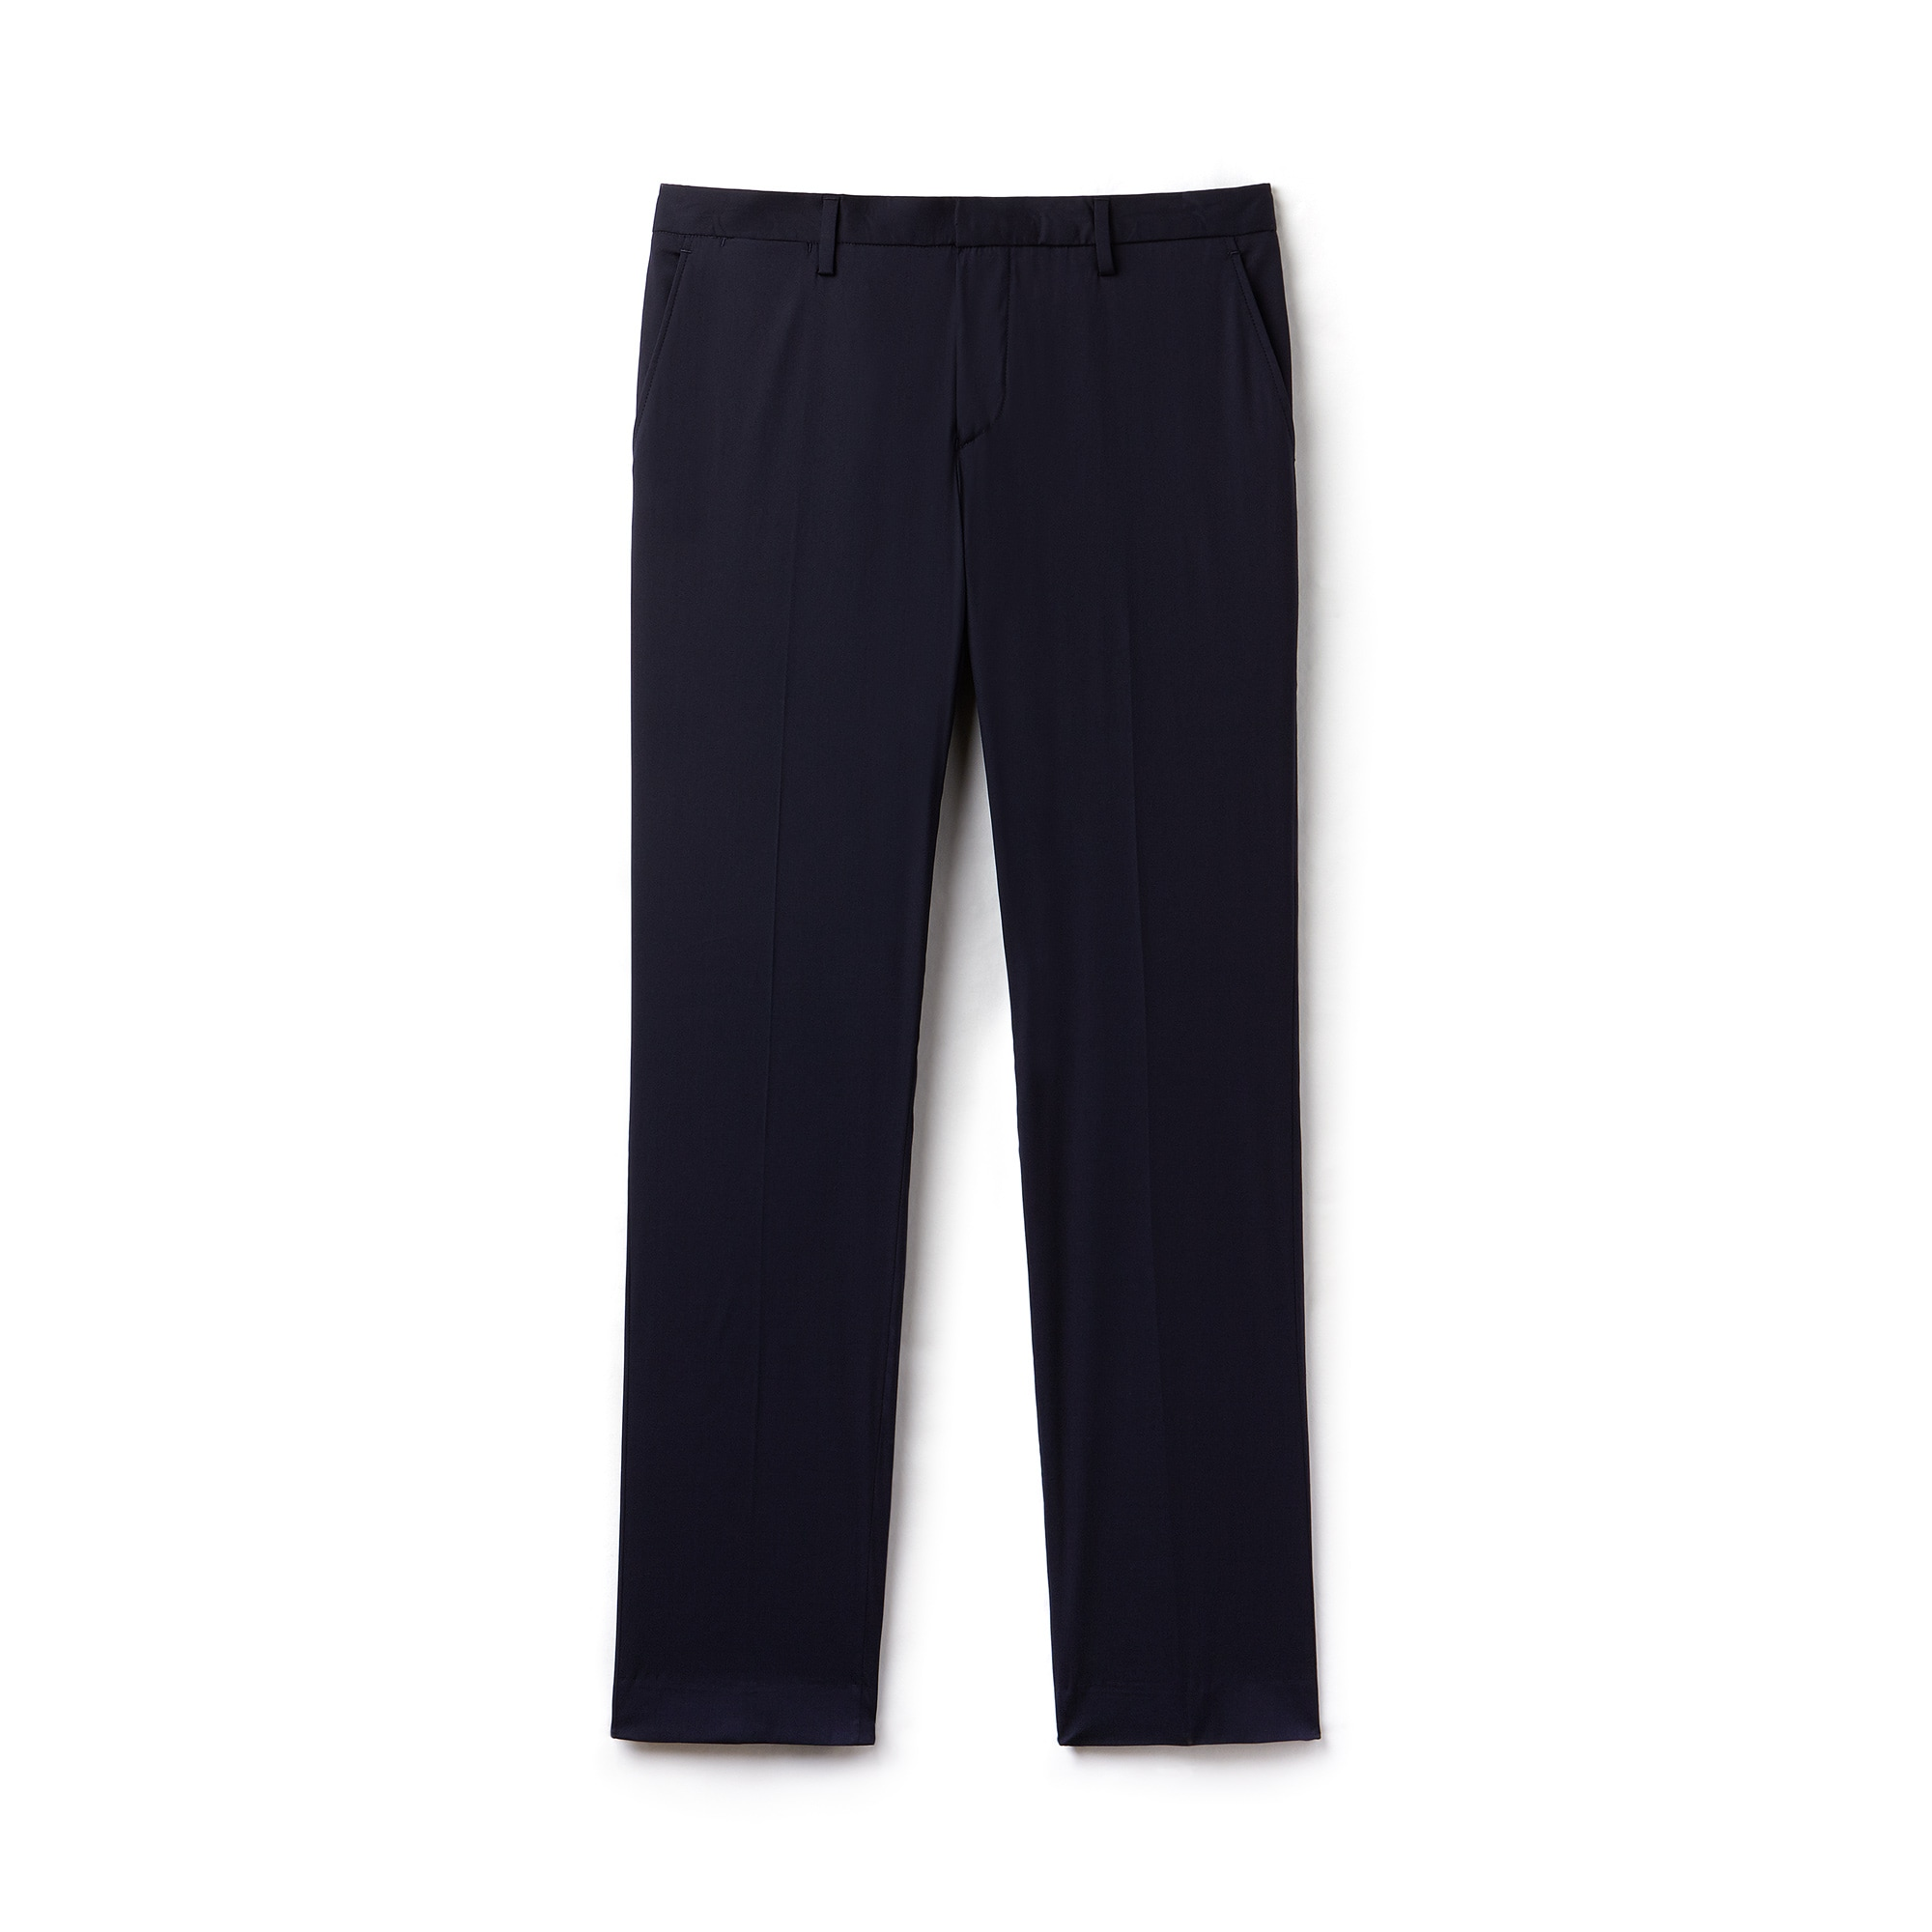 Men's MOTION Regular Fit Pleated Pants